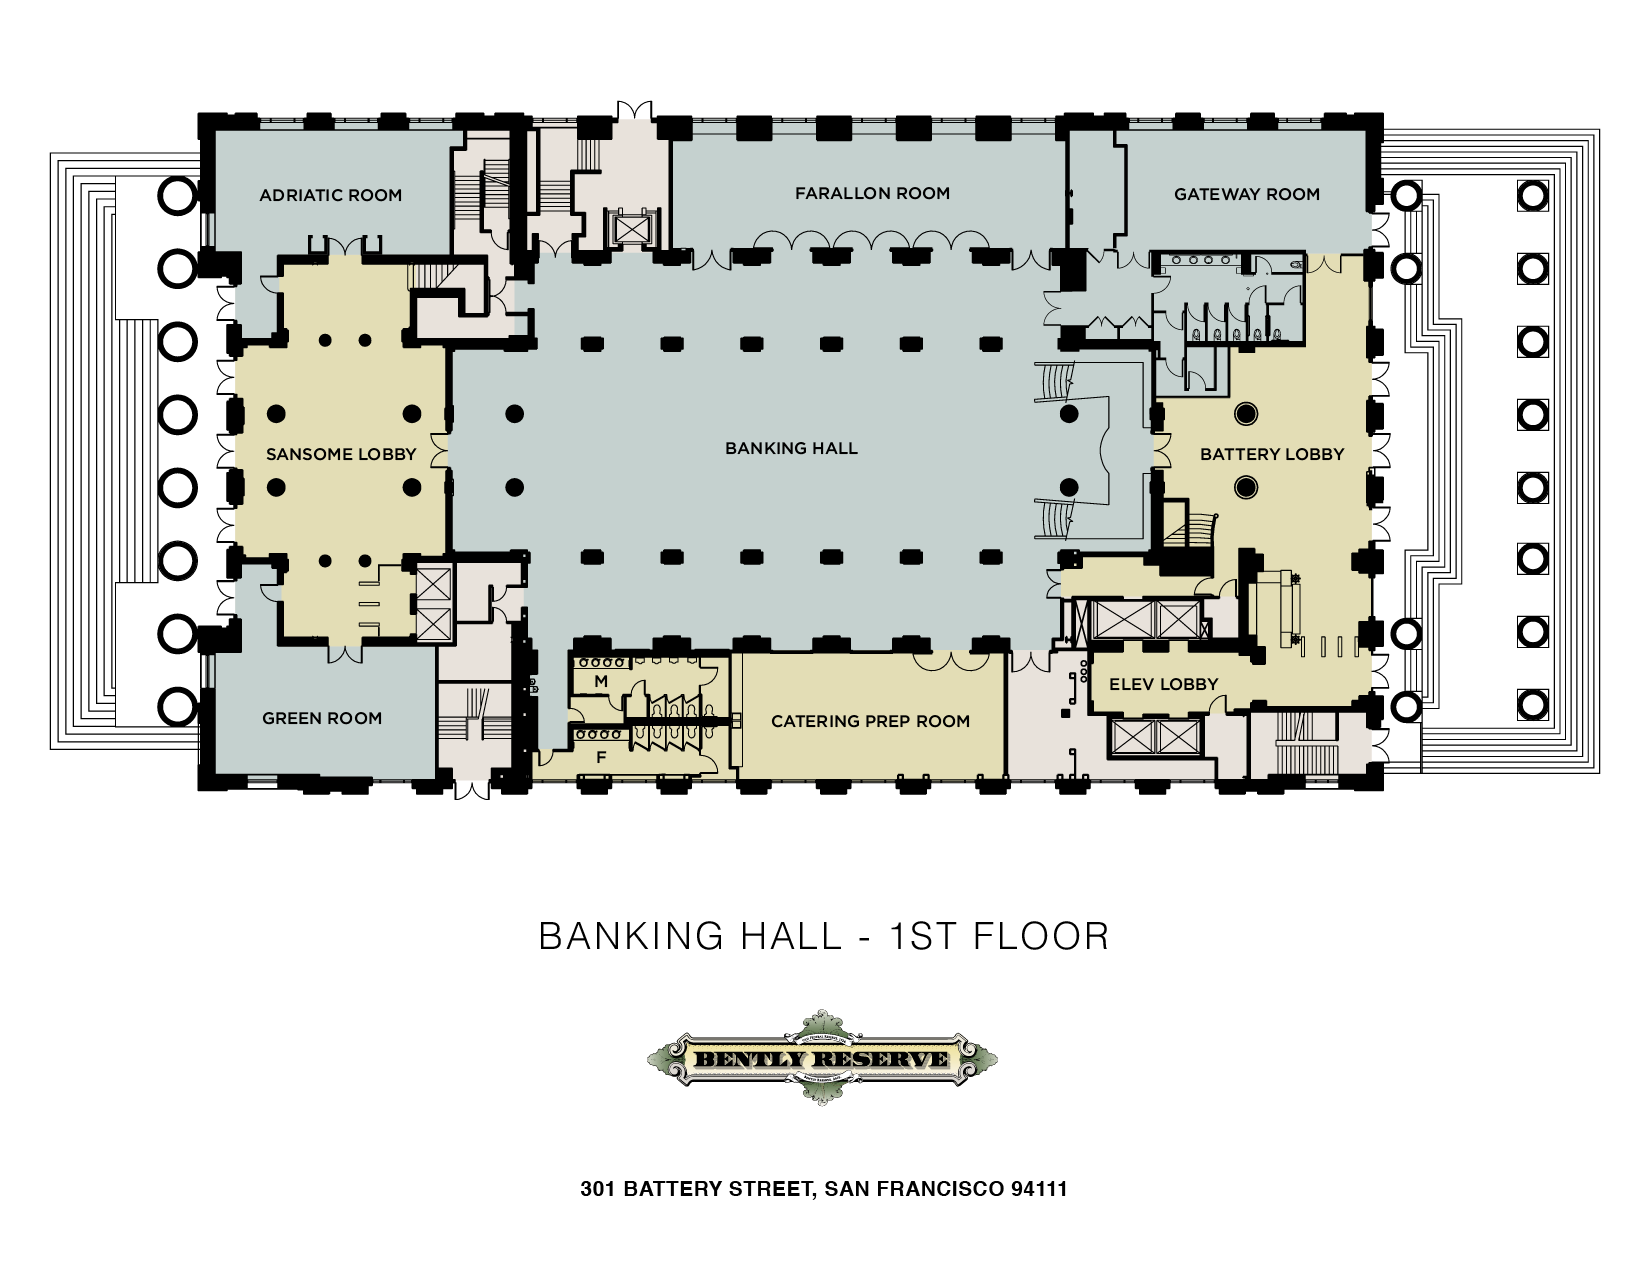 First floor the banking hall bank plan layout gym and spa area plans bibliotheksdesign home